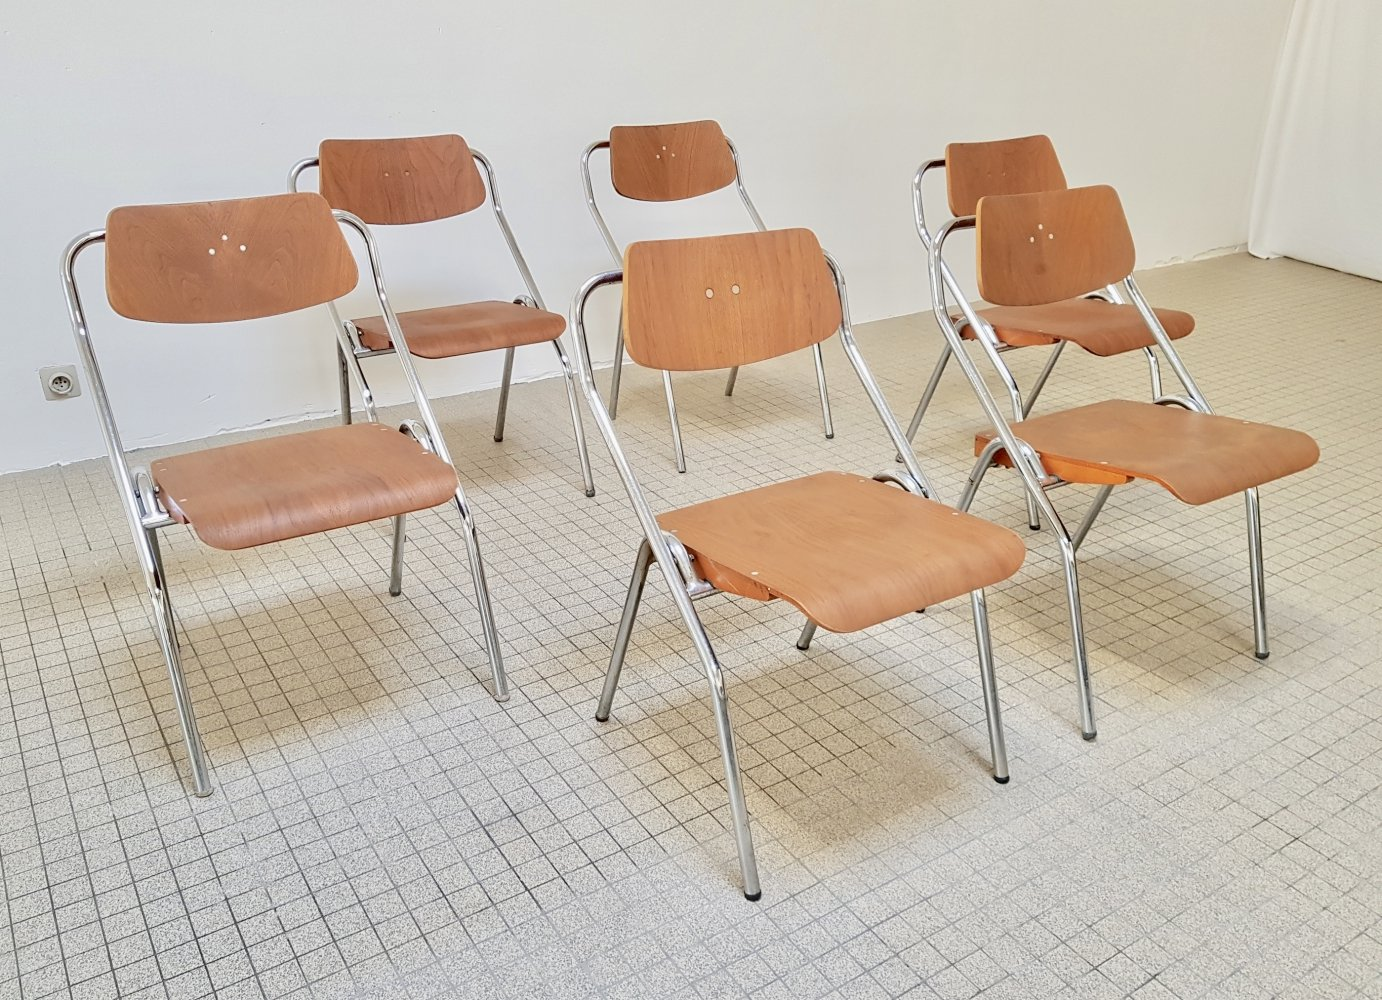 Mauser folding chairs by Erich Schelling, 1954